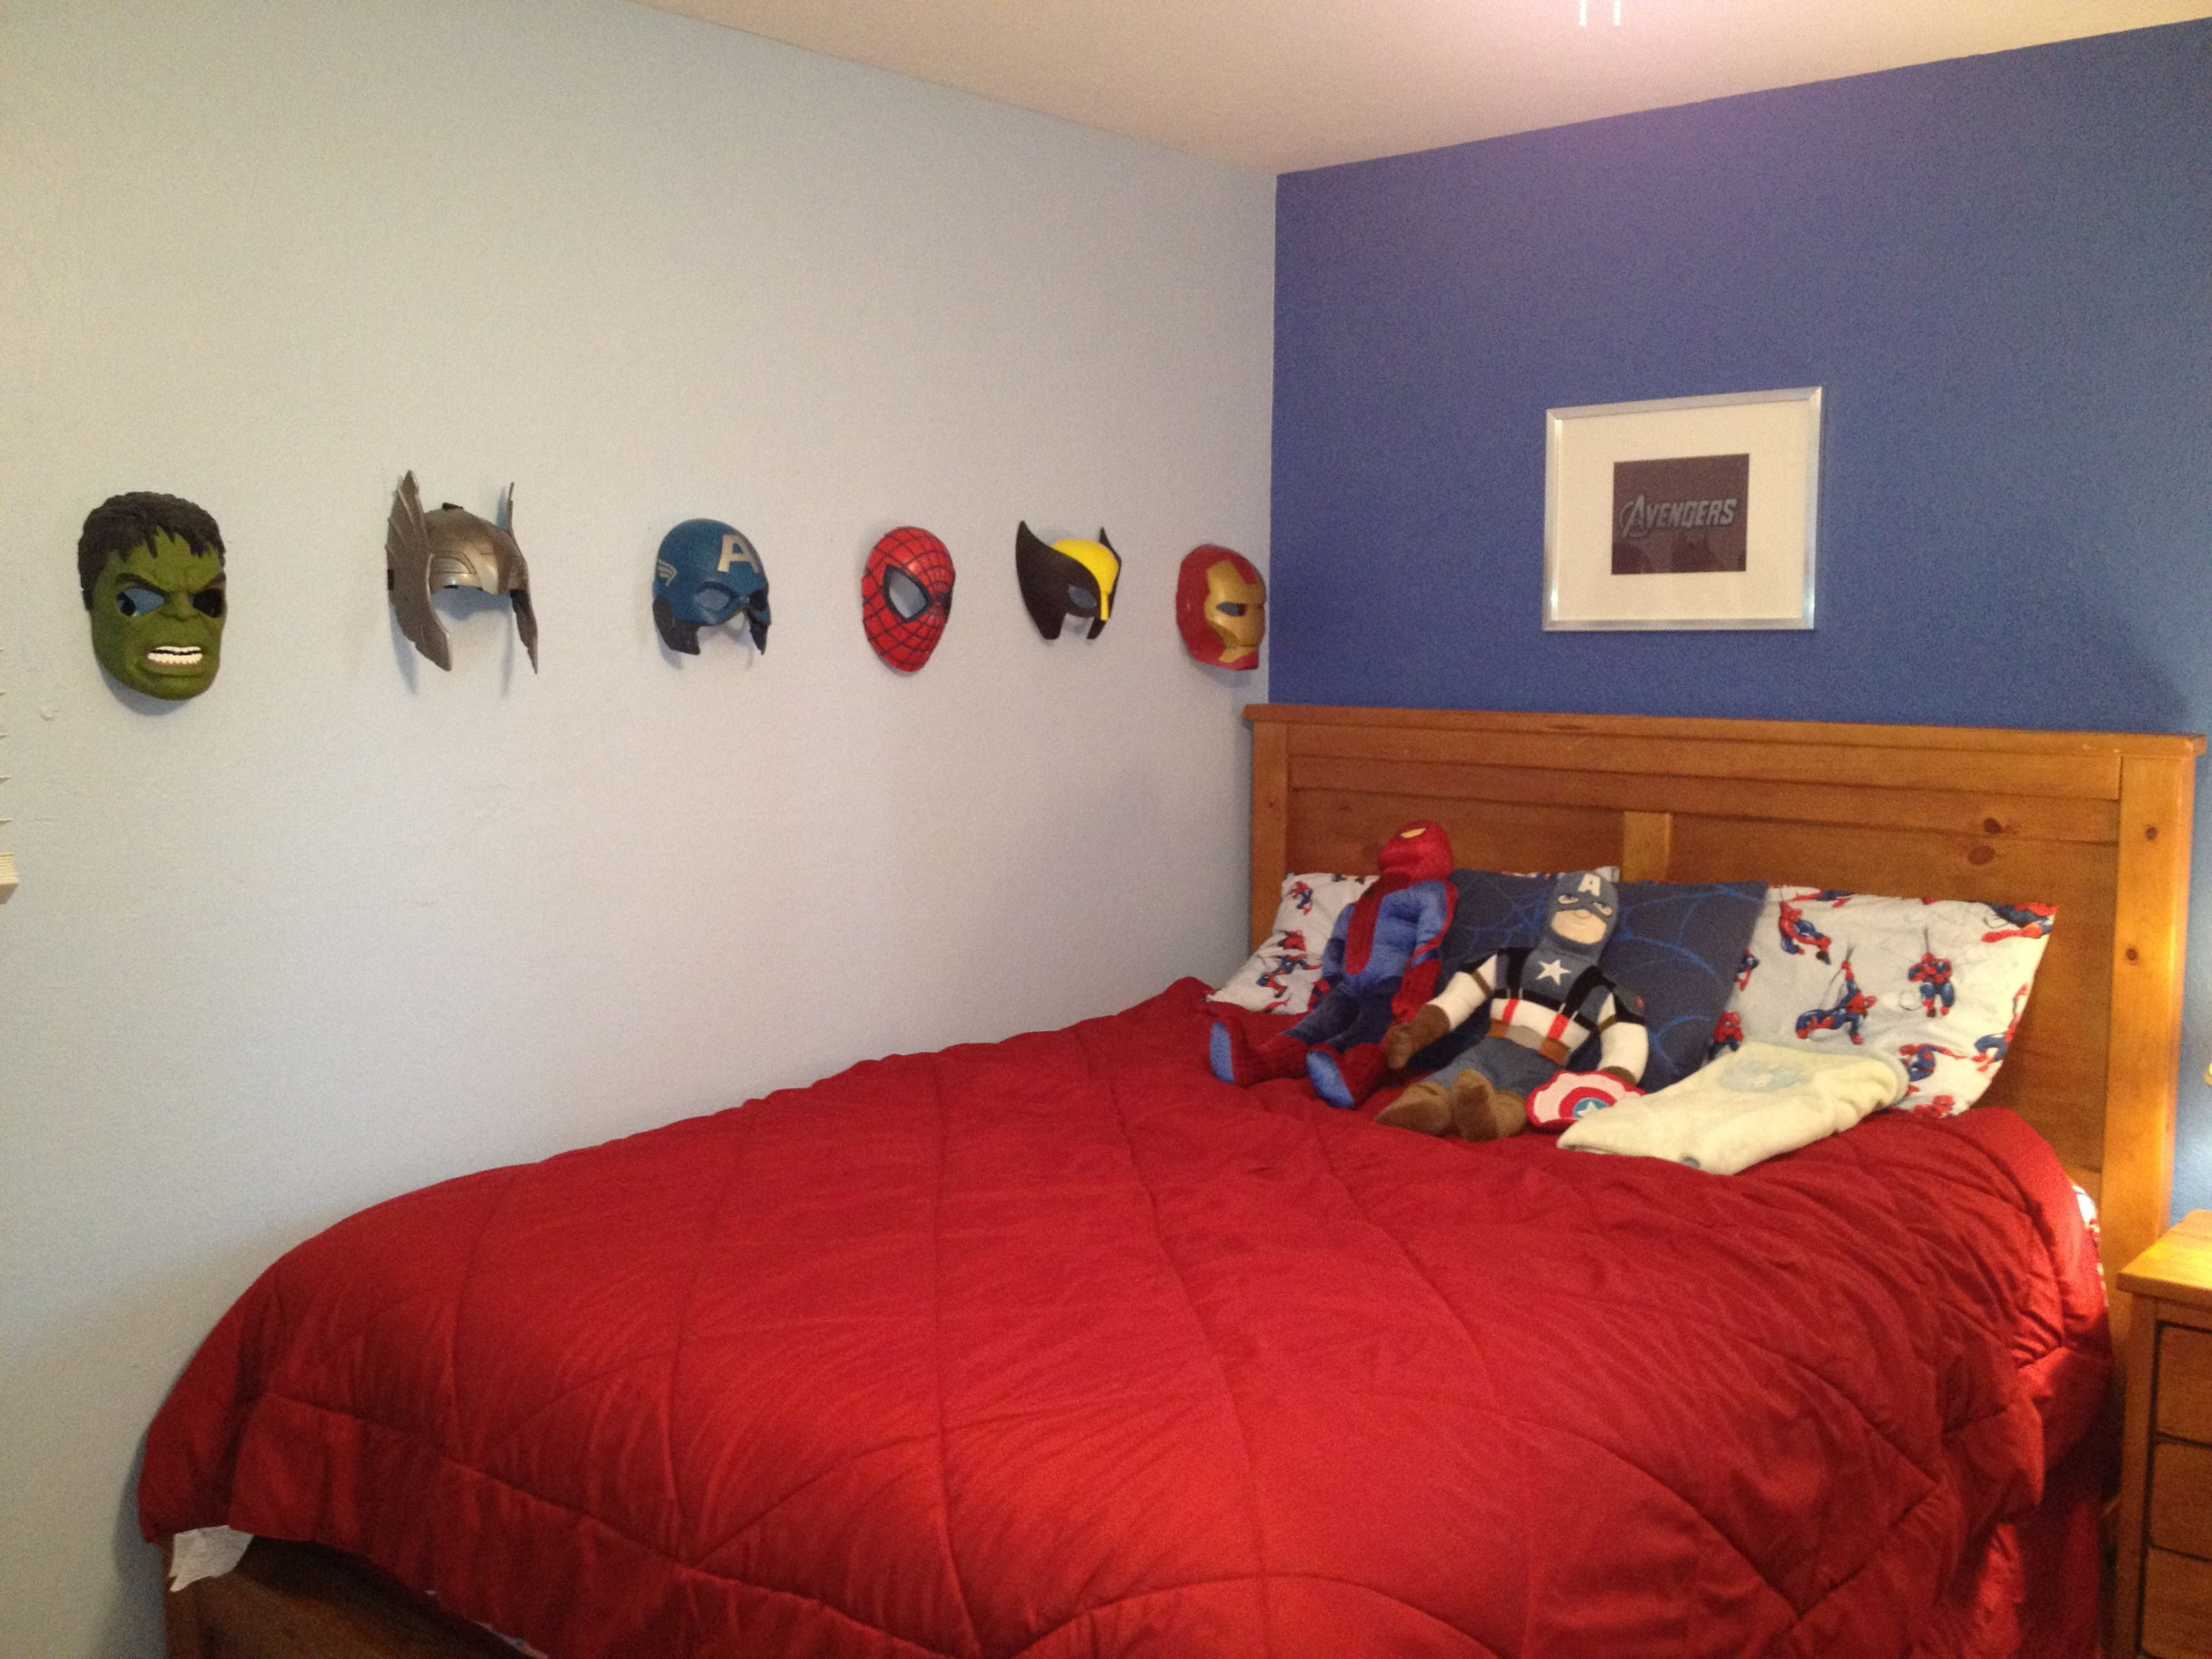 Avengers Boys Bedroom Use Masks As Decoration By Hanging